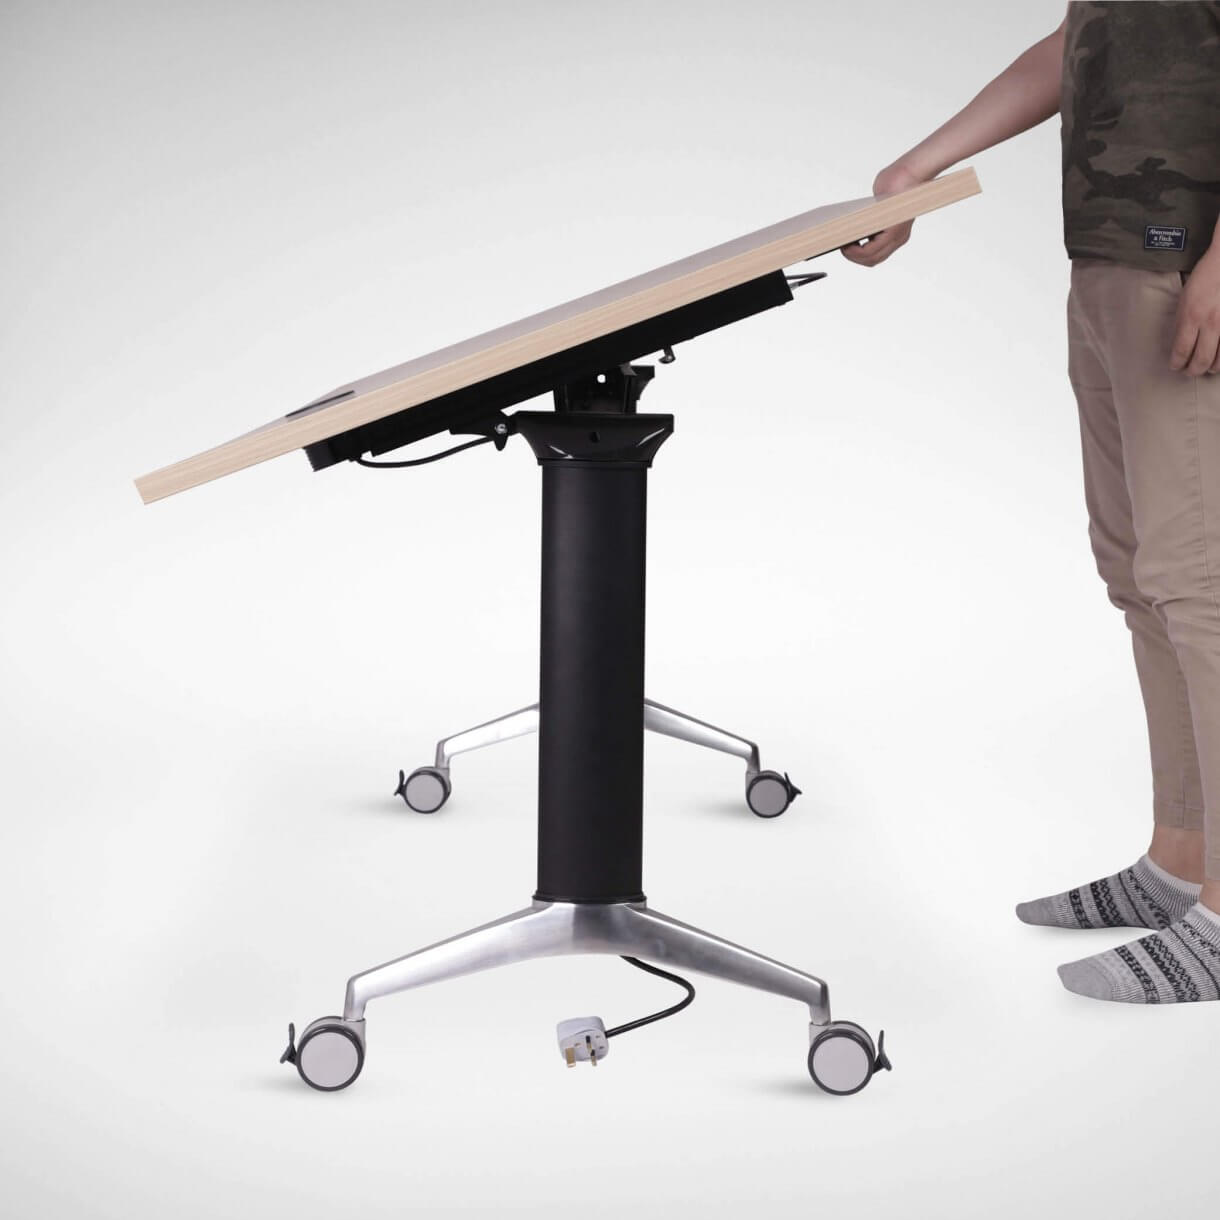 Telescopic Seminar Table to Work at All Angles for Maximum Efficiency - Comfort Furniture